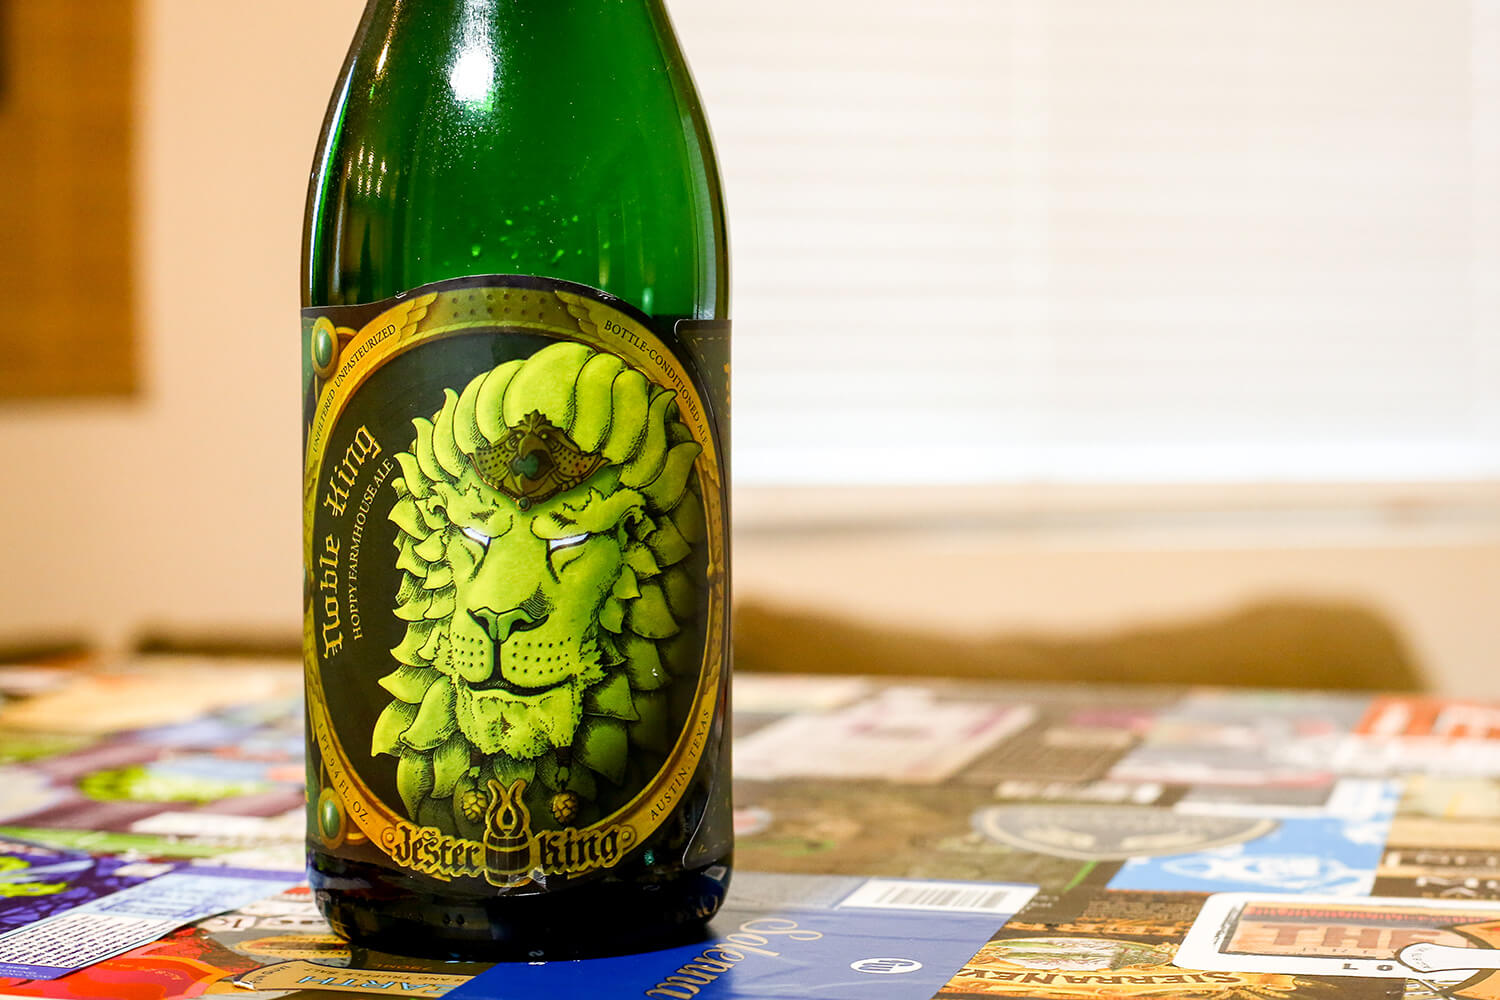 Jester King Brewery — Noble King